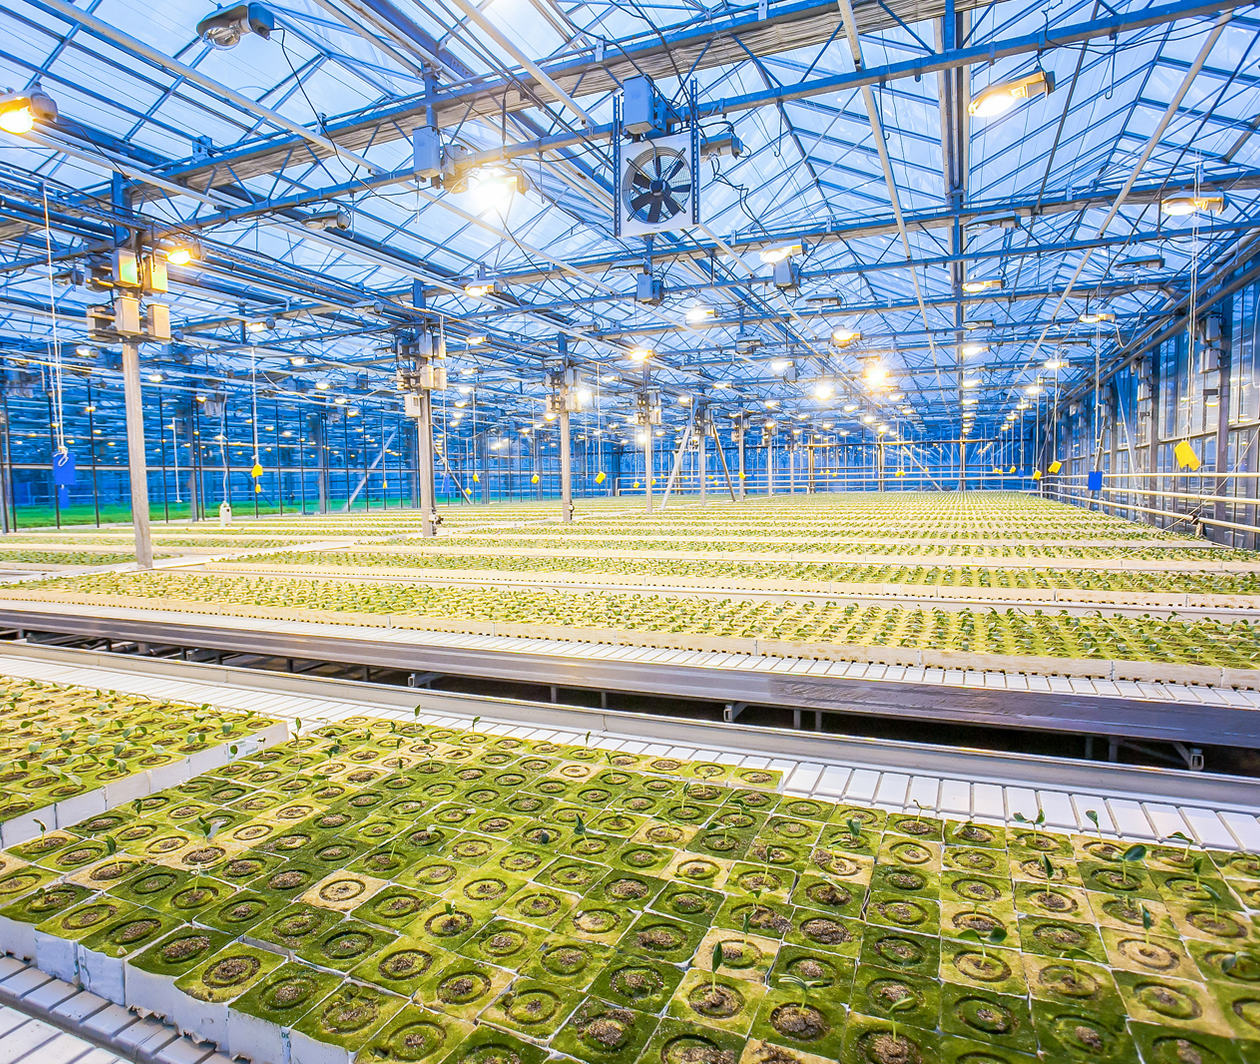 Improving Food Production with Agricultural Technology and Plant Biotechnology